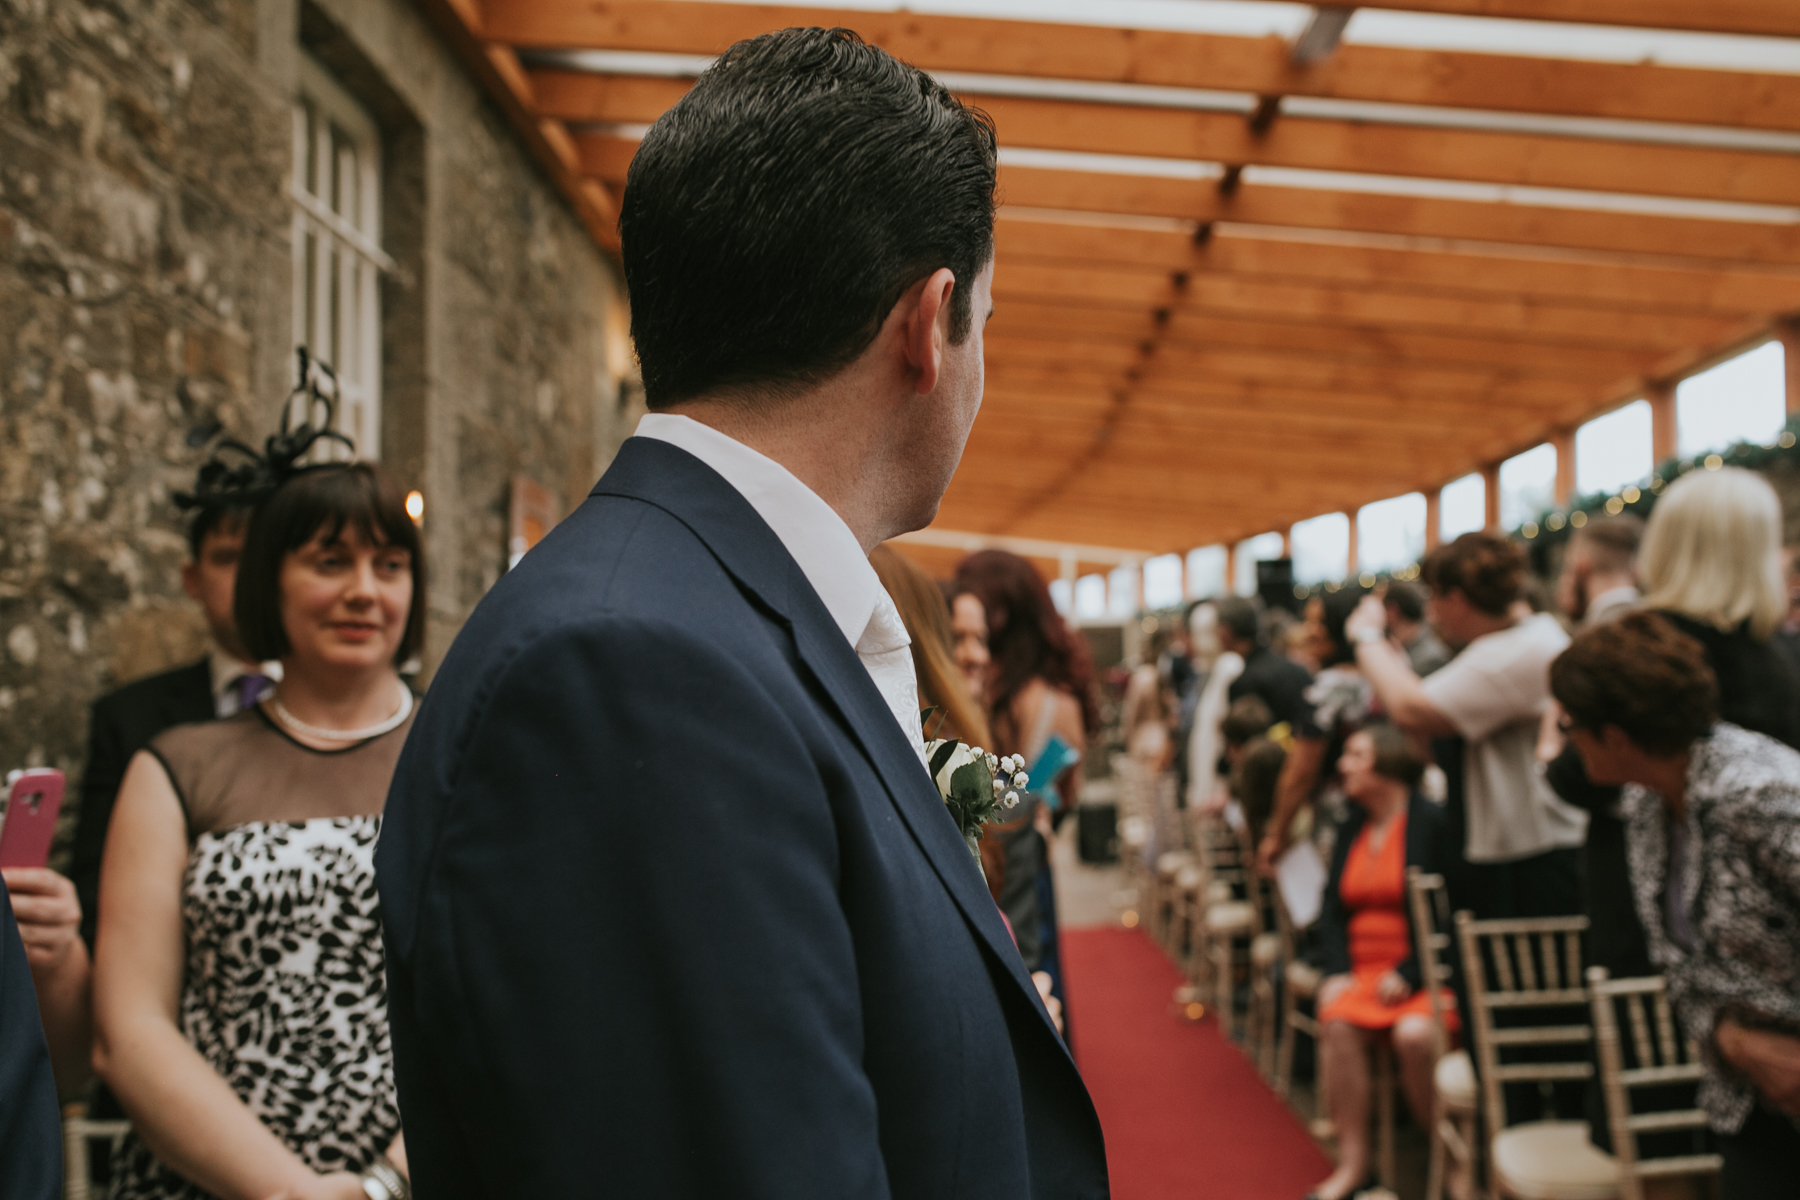 liviafigueiredo_weddingphotography_boyne_hill_house_estate_179.jpg